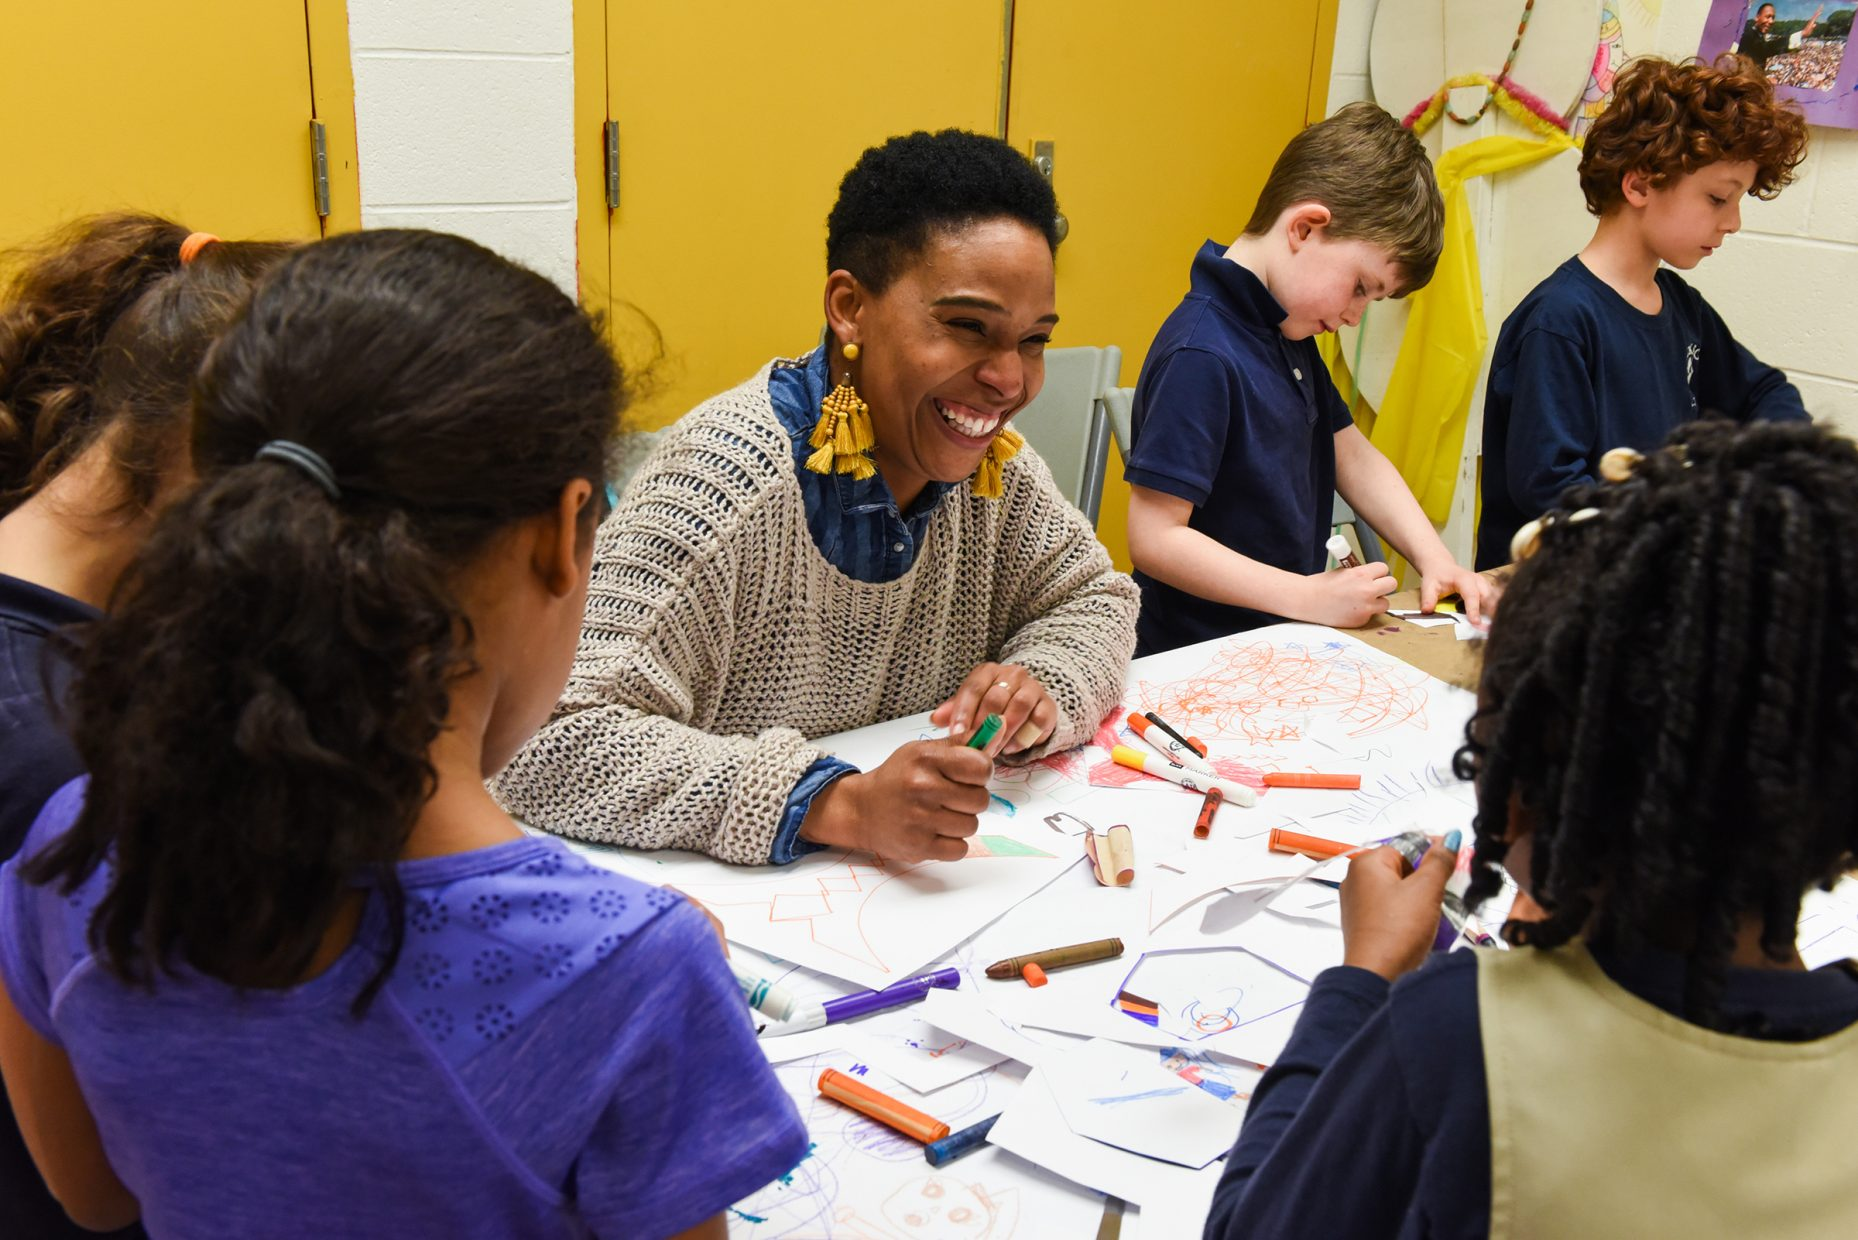 A woman laughs while doing arts and crafts with children.